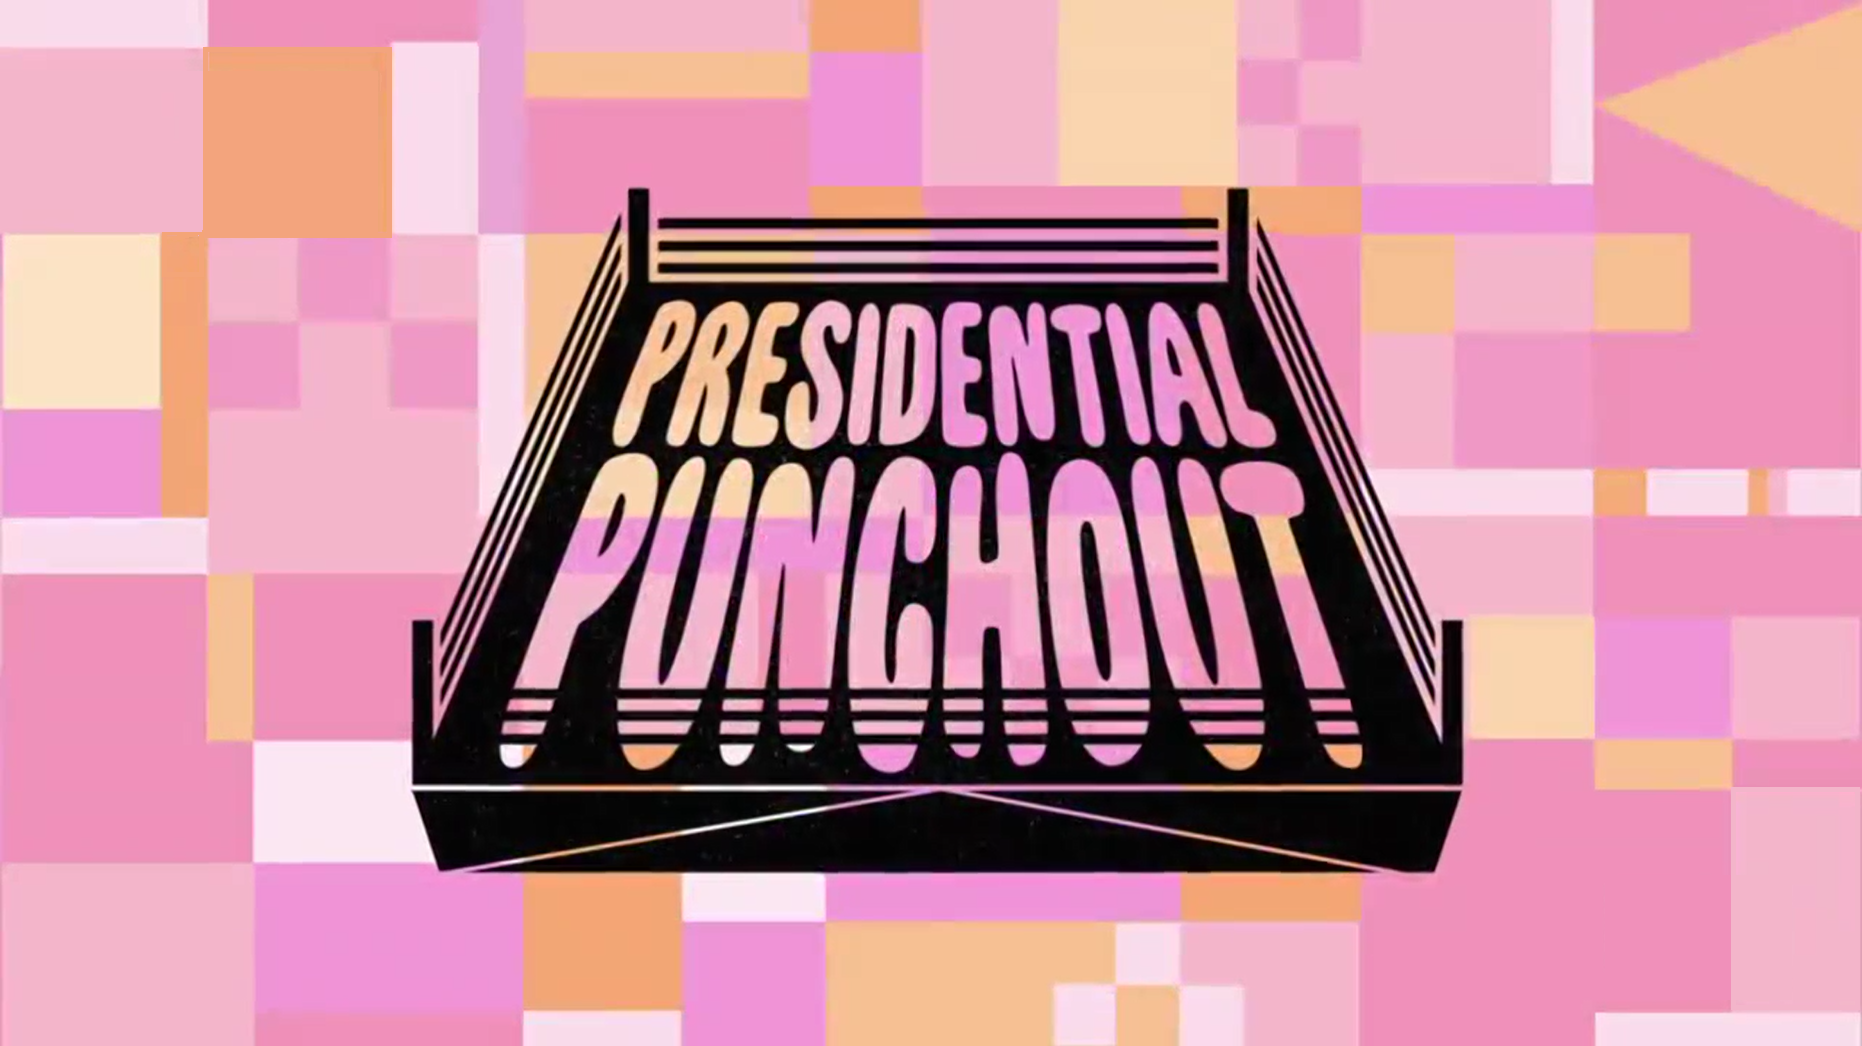 Presidential Punchout